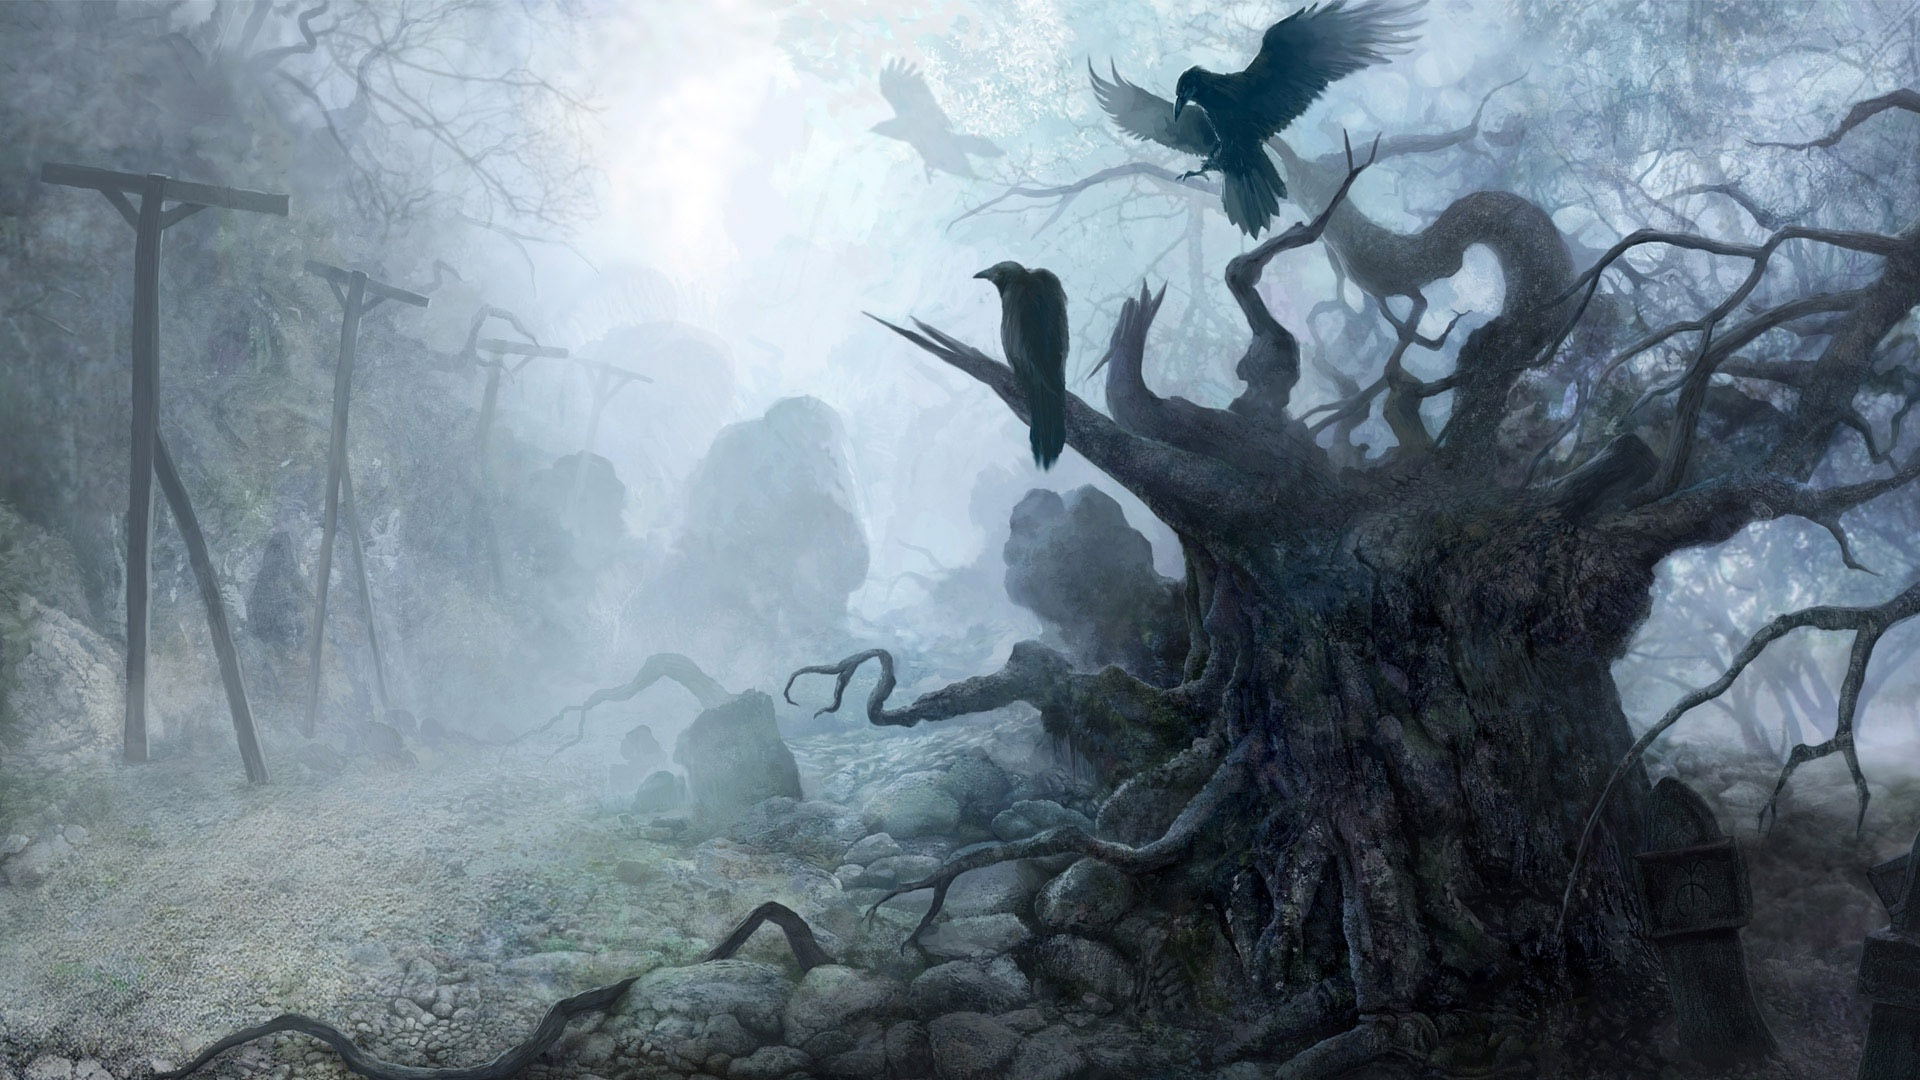 crows_fog_haze_tree_death_21730_1920x1080